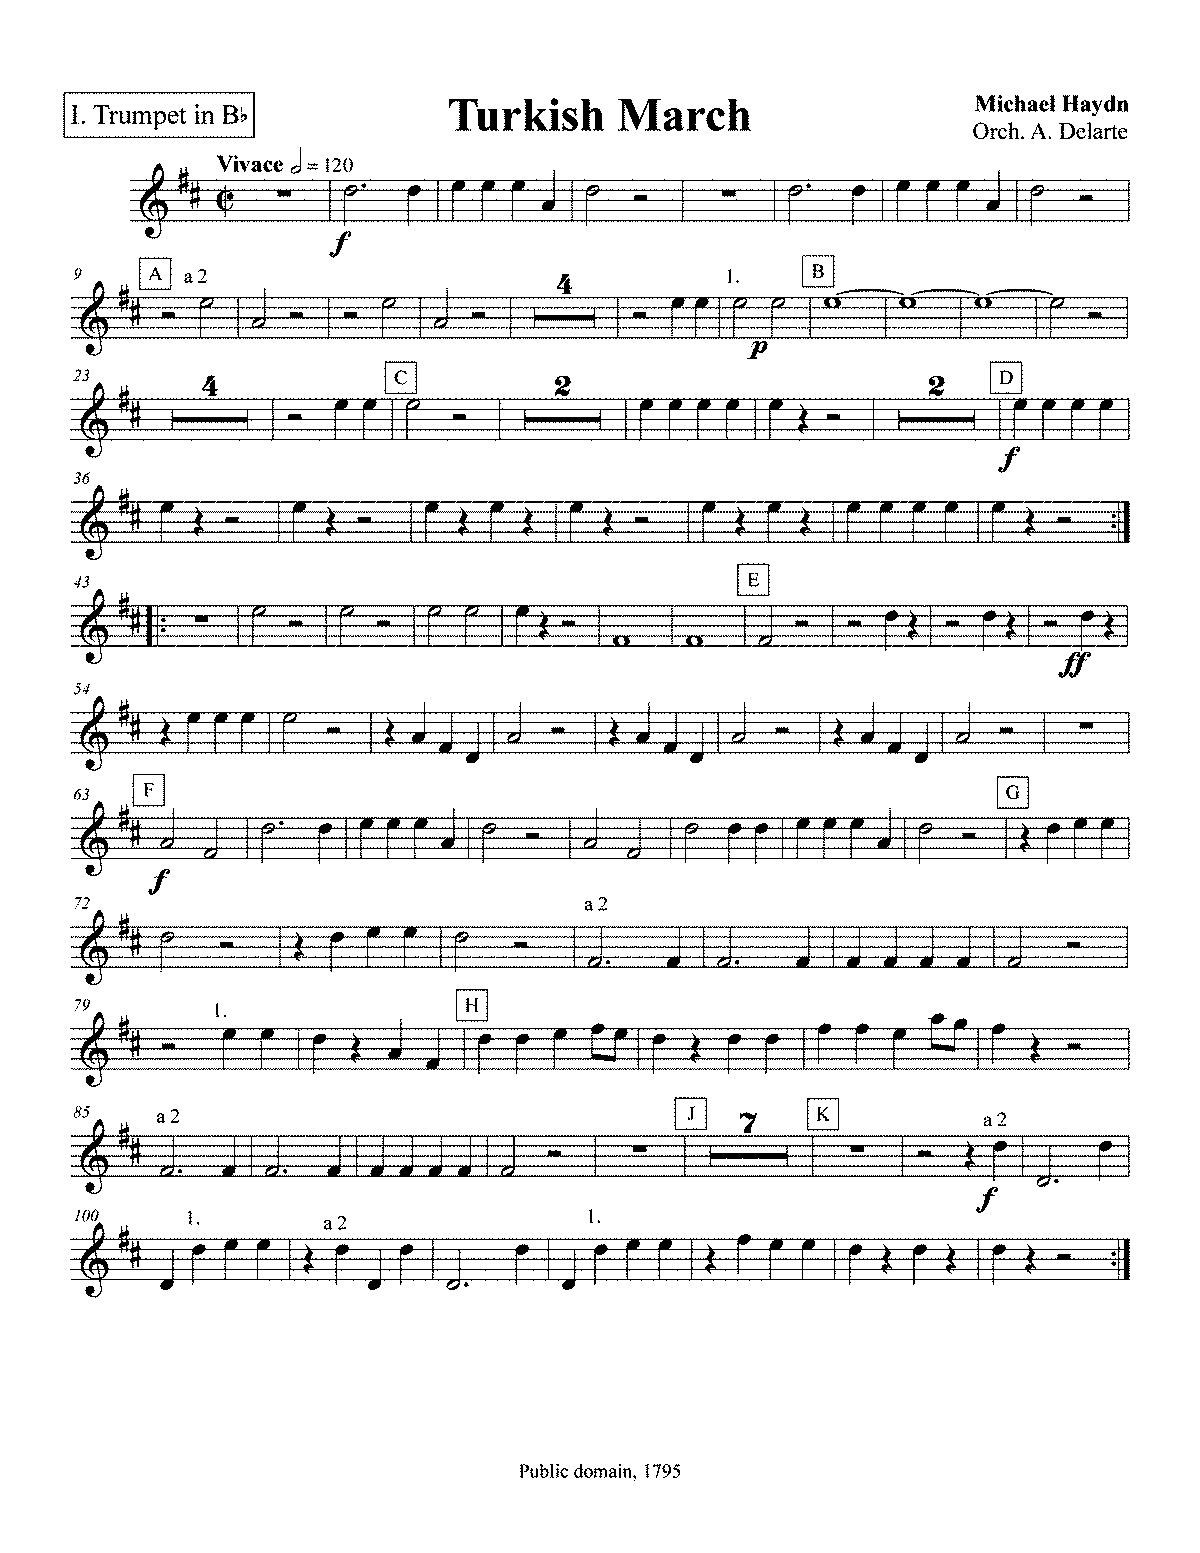 PMLP130783-Turkish March MH Orch - I. Trumpet in Bb.pdf